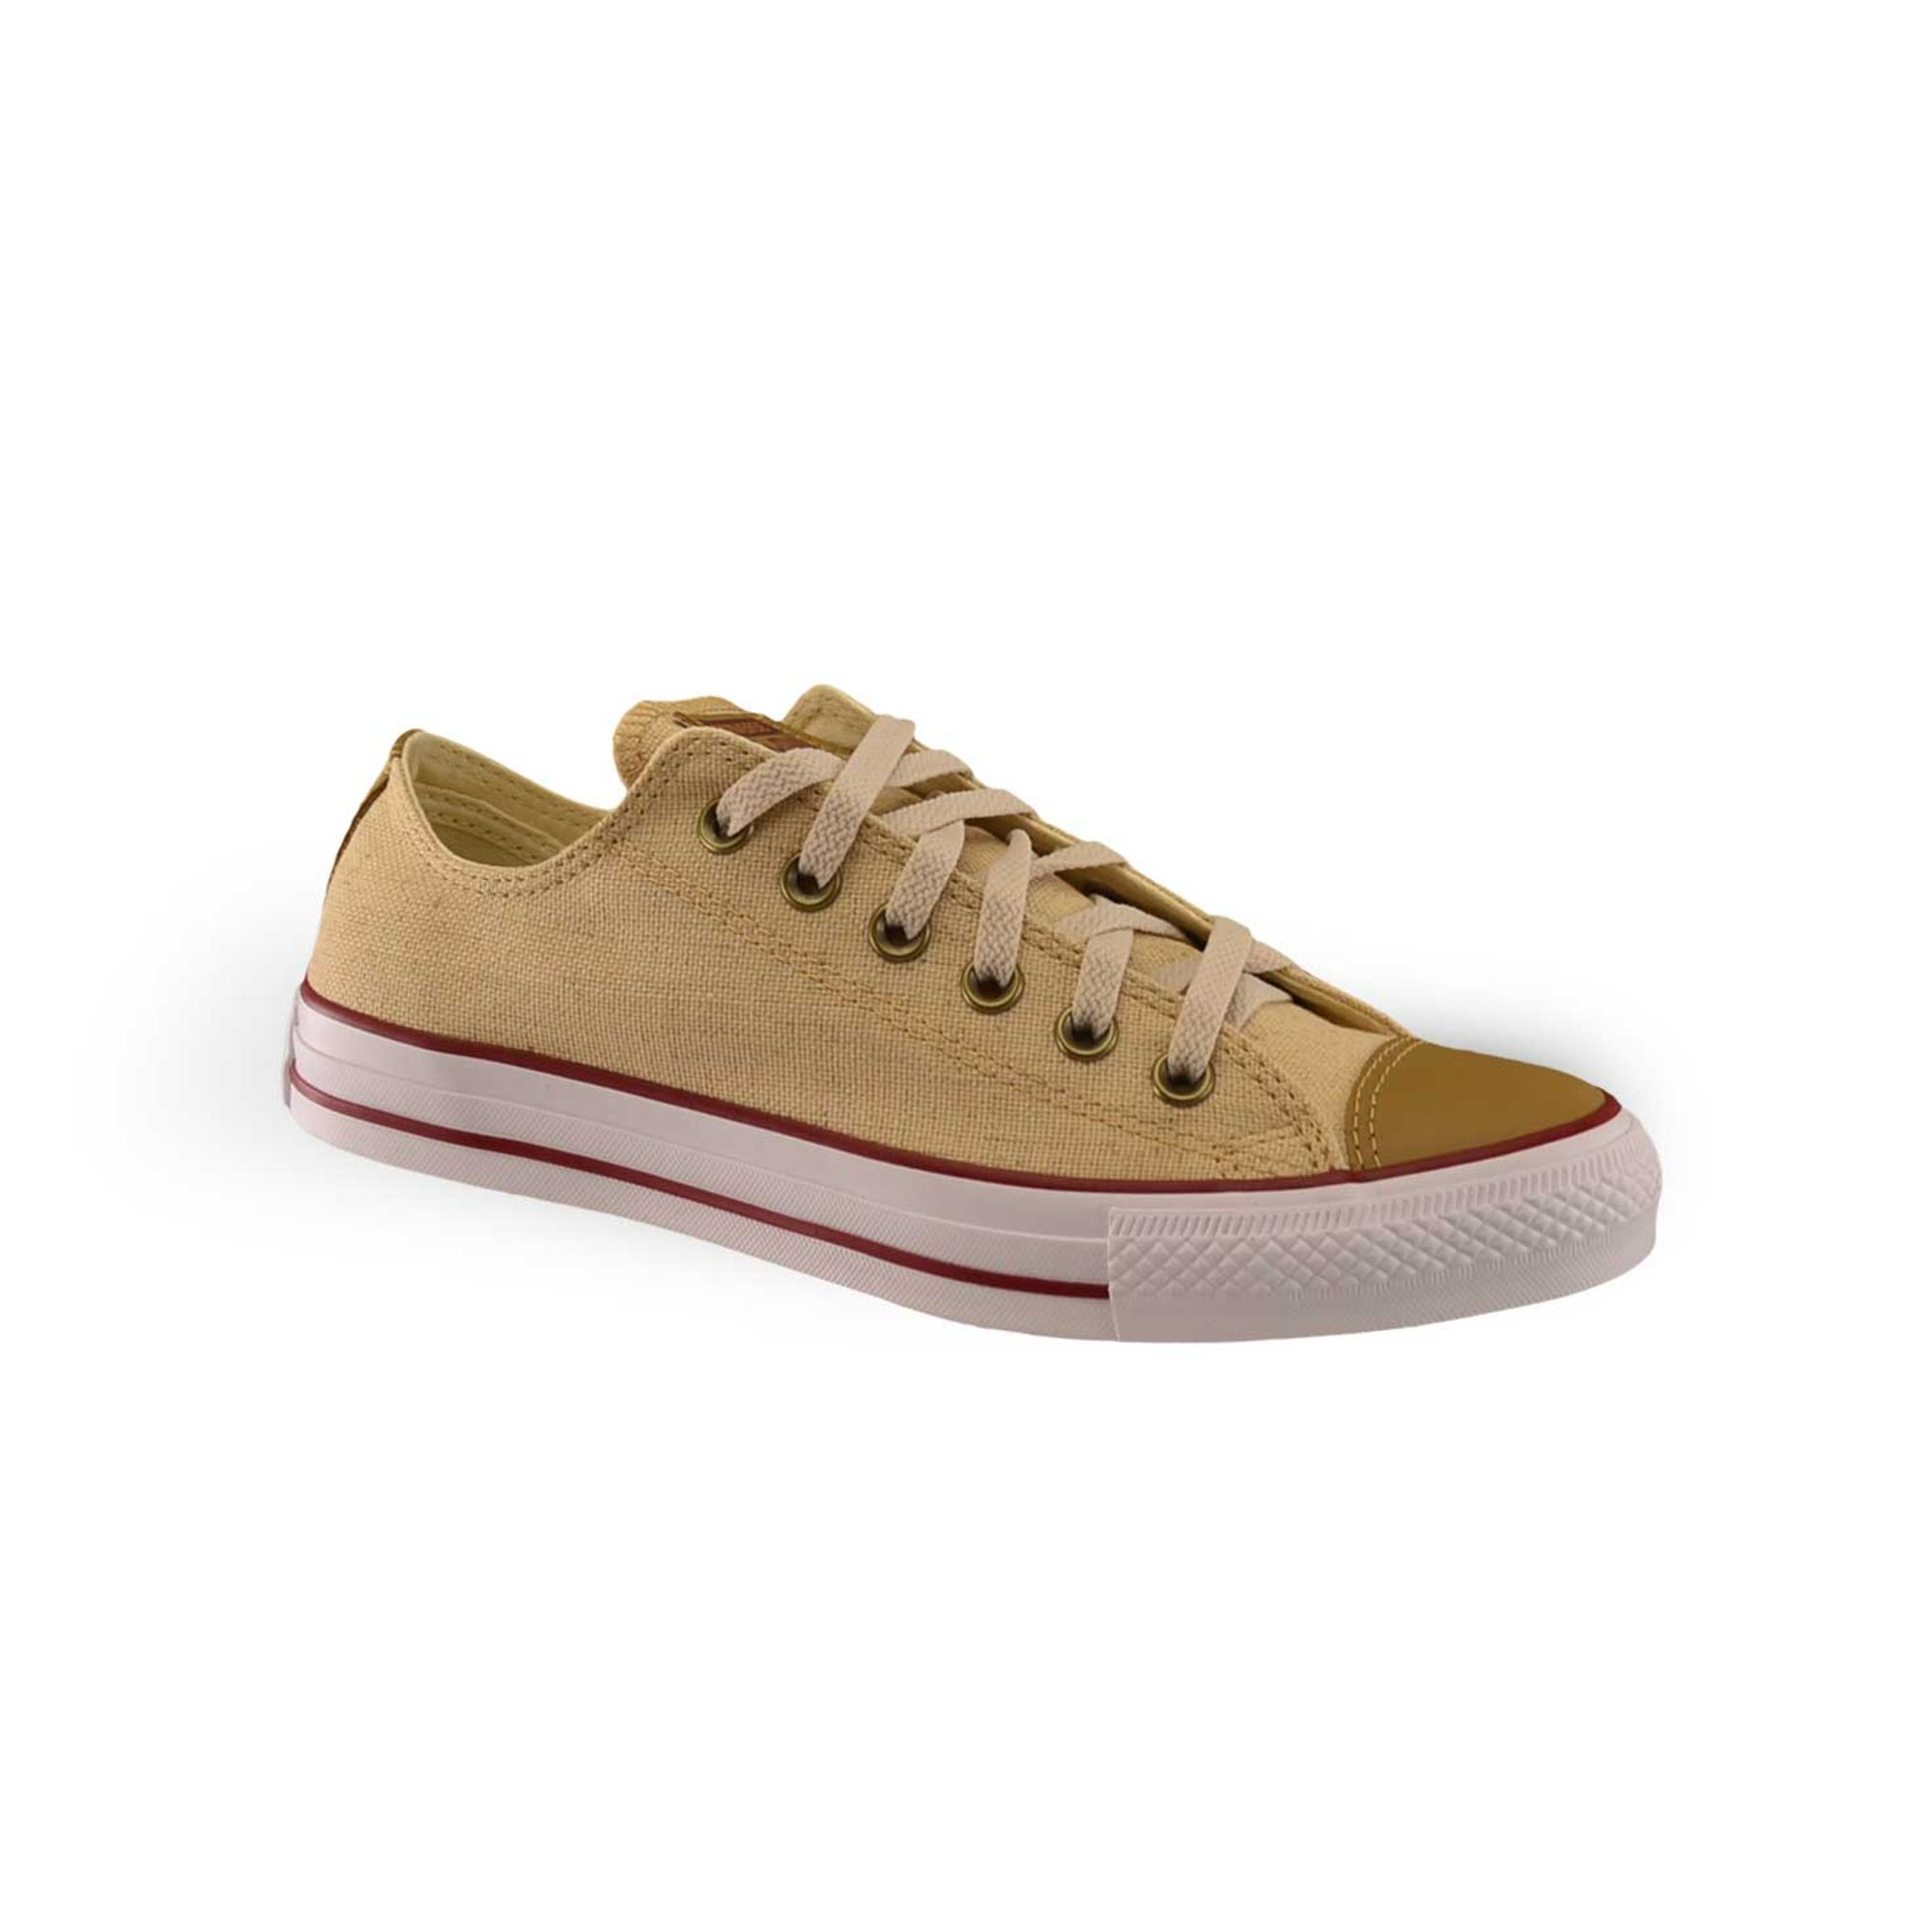 ZAPATILLAS CONVERSE CHUCK TAYLOR ALL STAR LINEN redsport